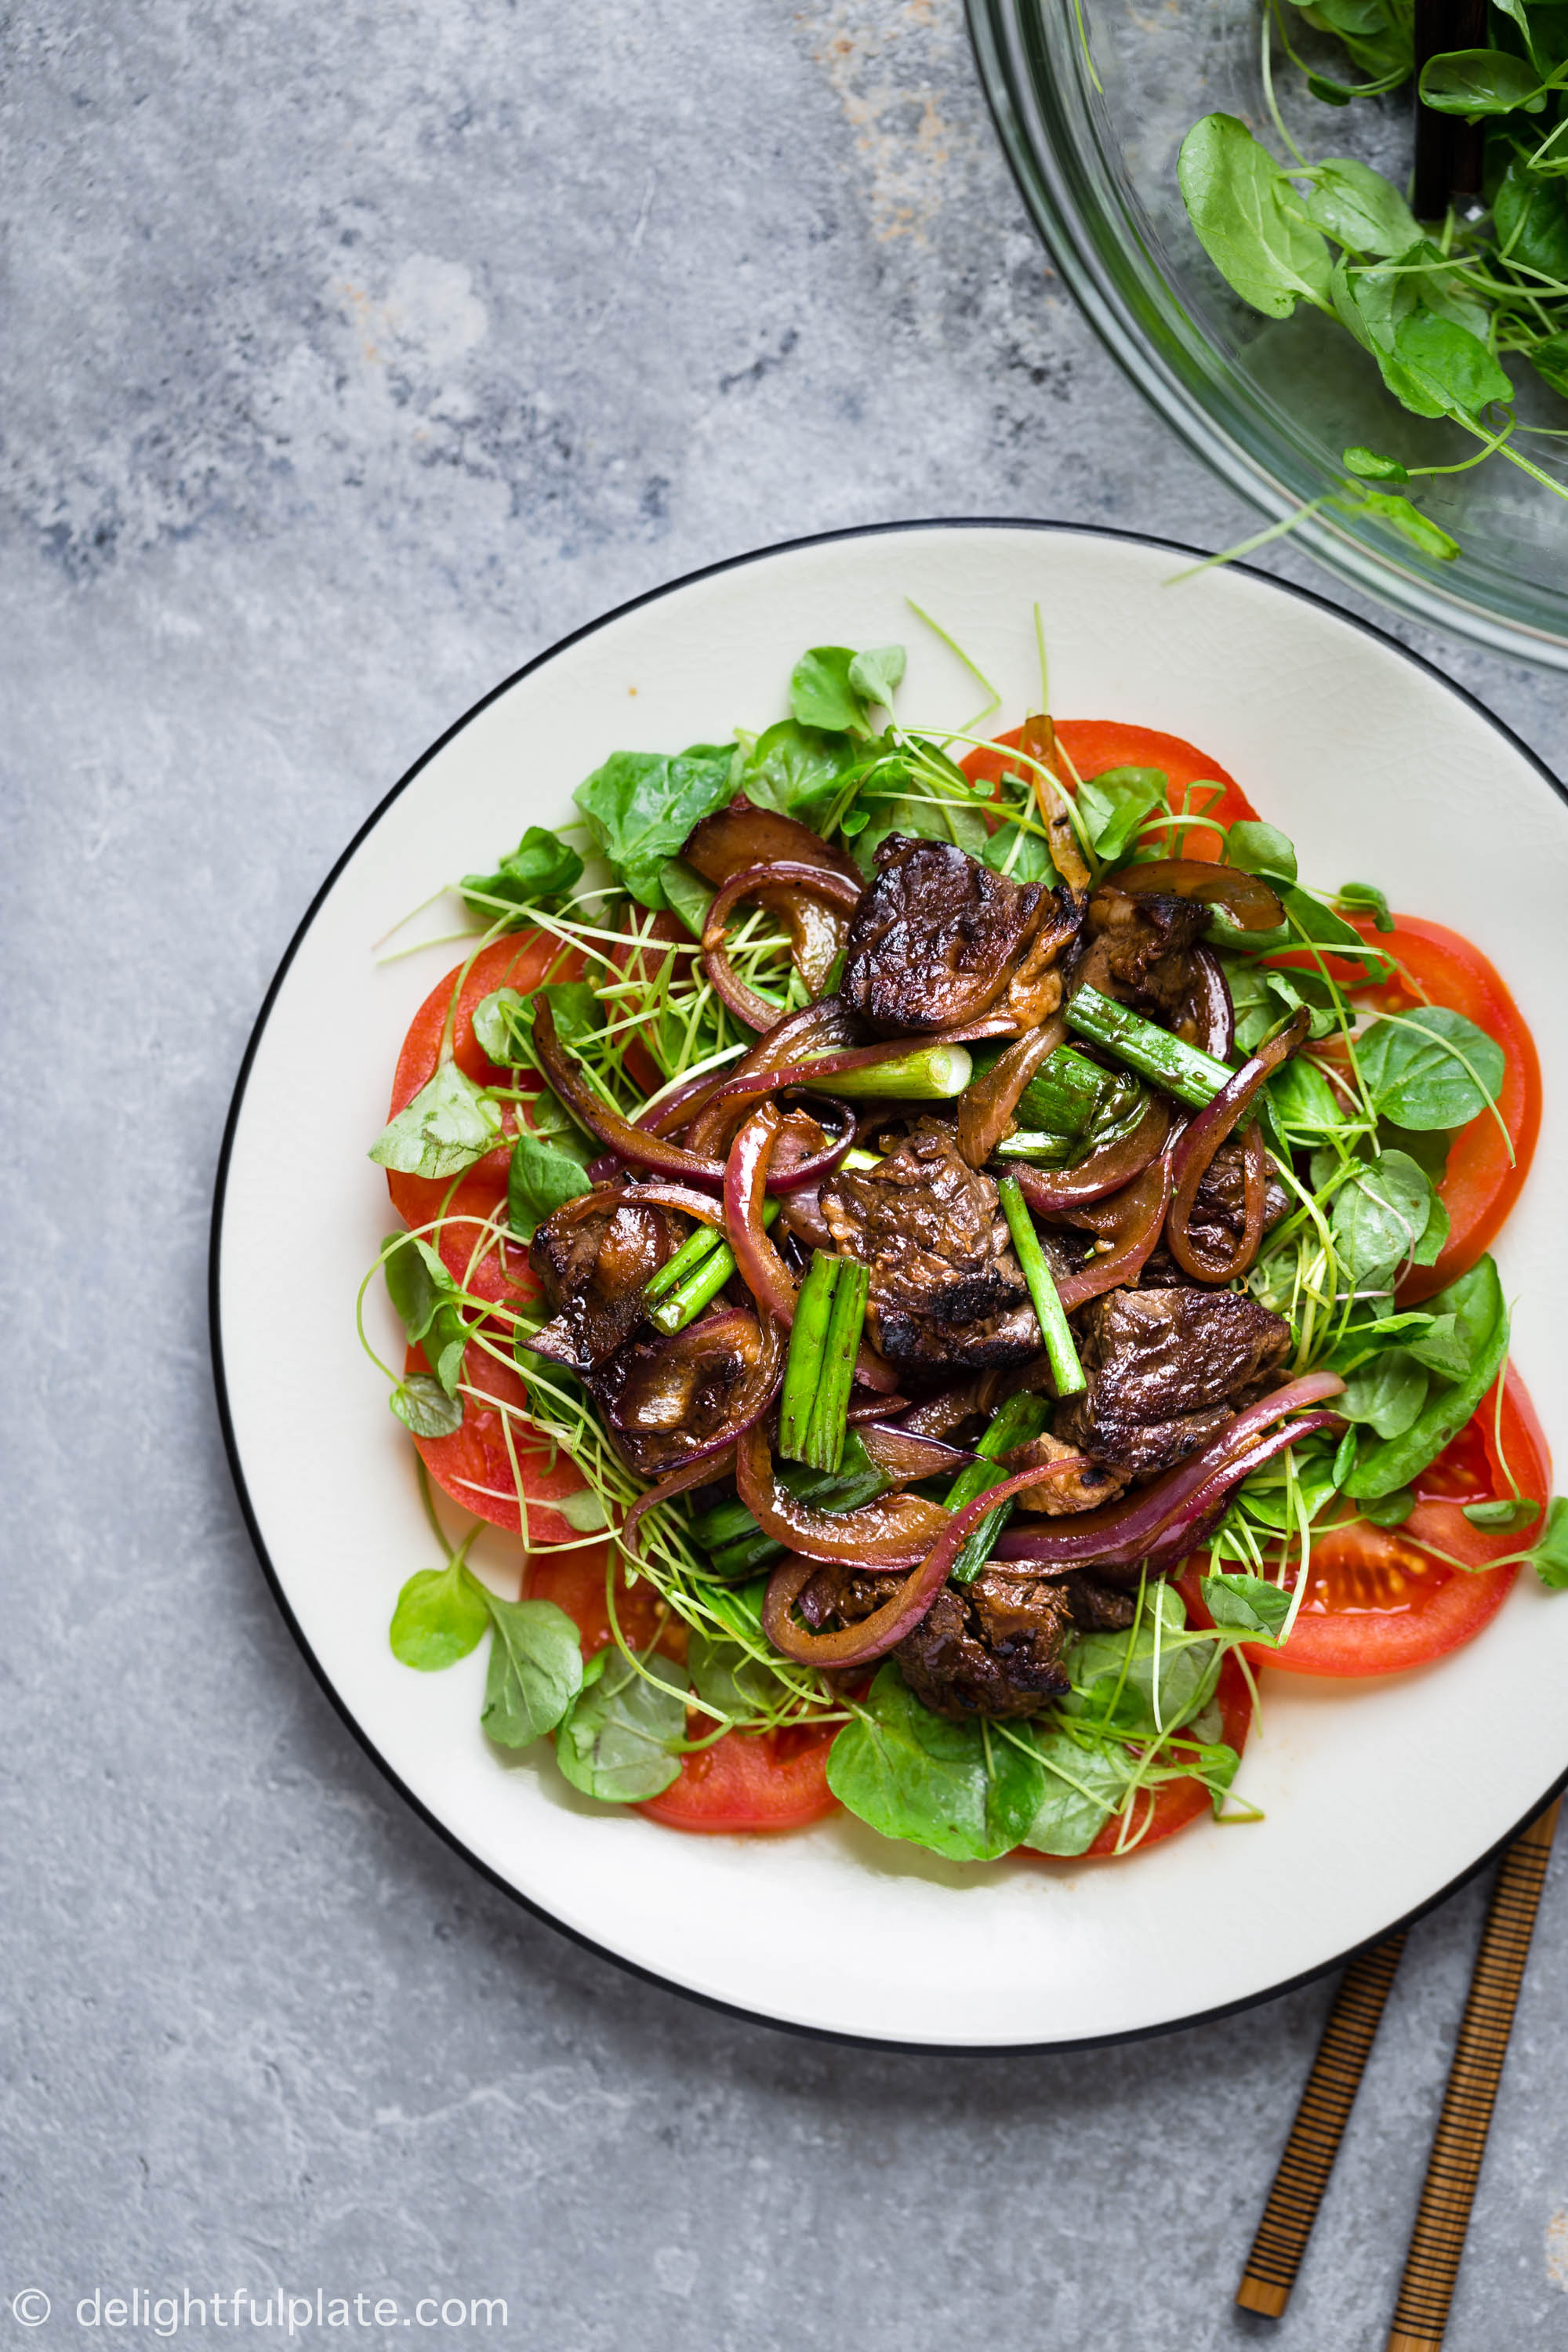 Vietnamese Shaking Beef (Bo Luc Lac) is a popular Southern dish that is excellent for everyday meals as well as special occasions. This dish features tender and flavorful beef cubes plated on a bed of watercress and fresh tomatoes.